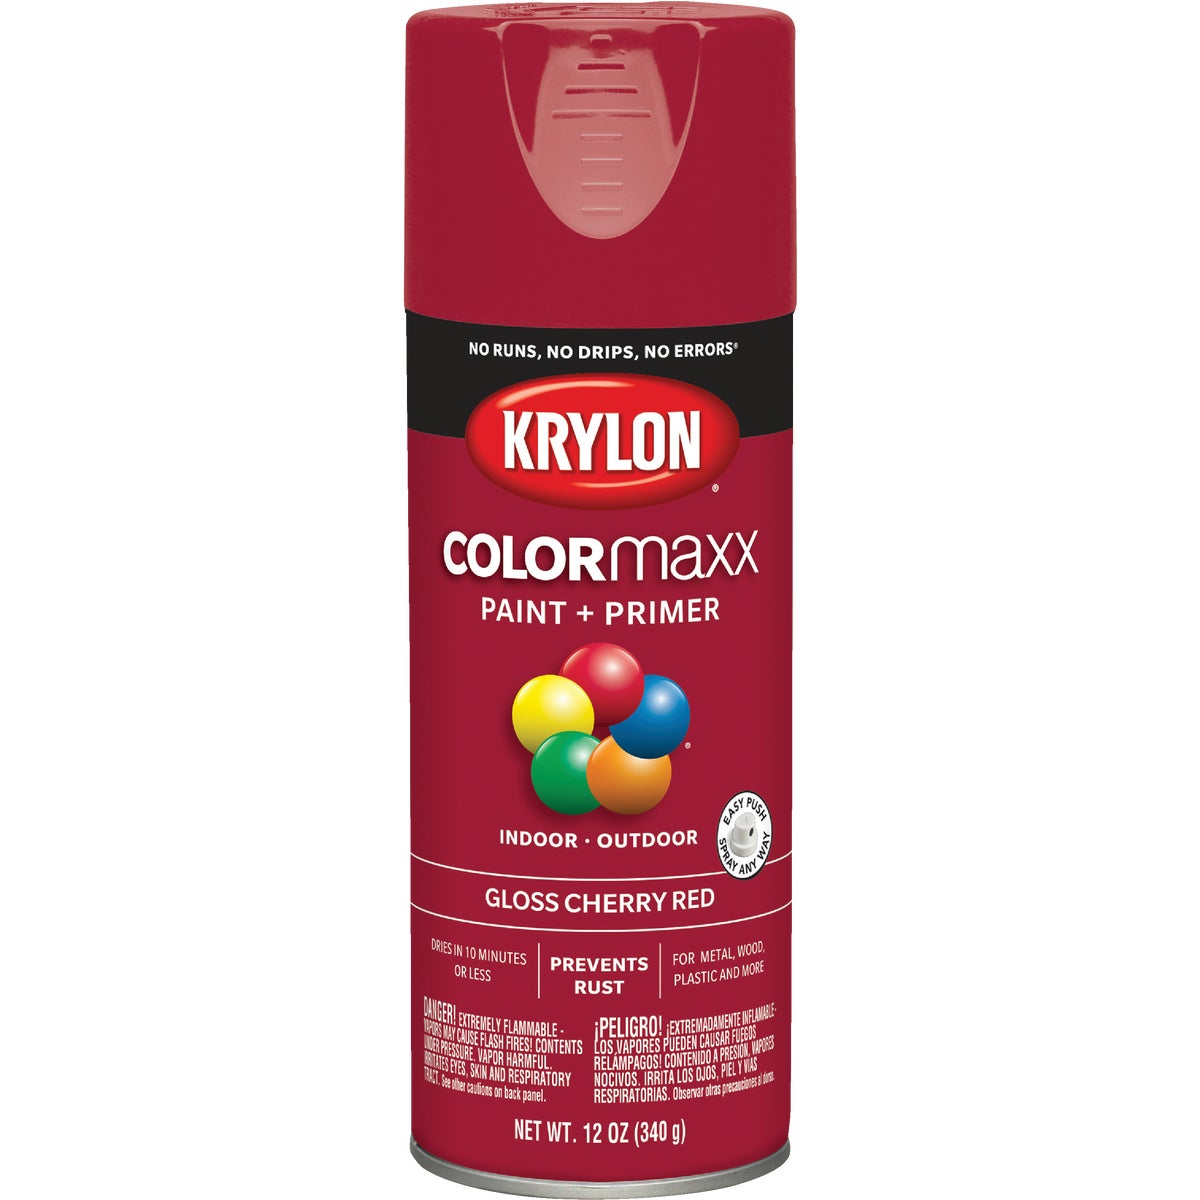 GLS CHRY RED SPRAY PAINT - 52101 by Krylon/consumer Div